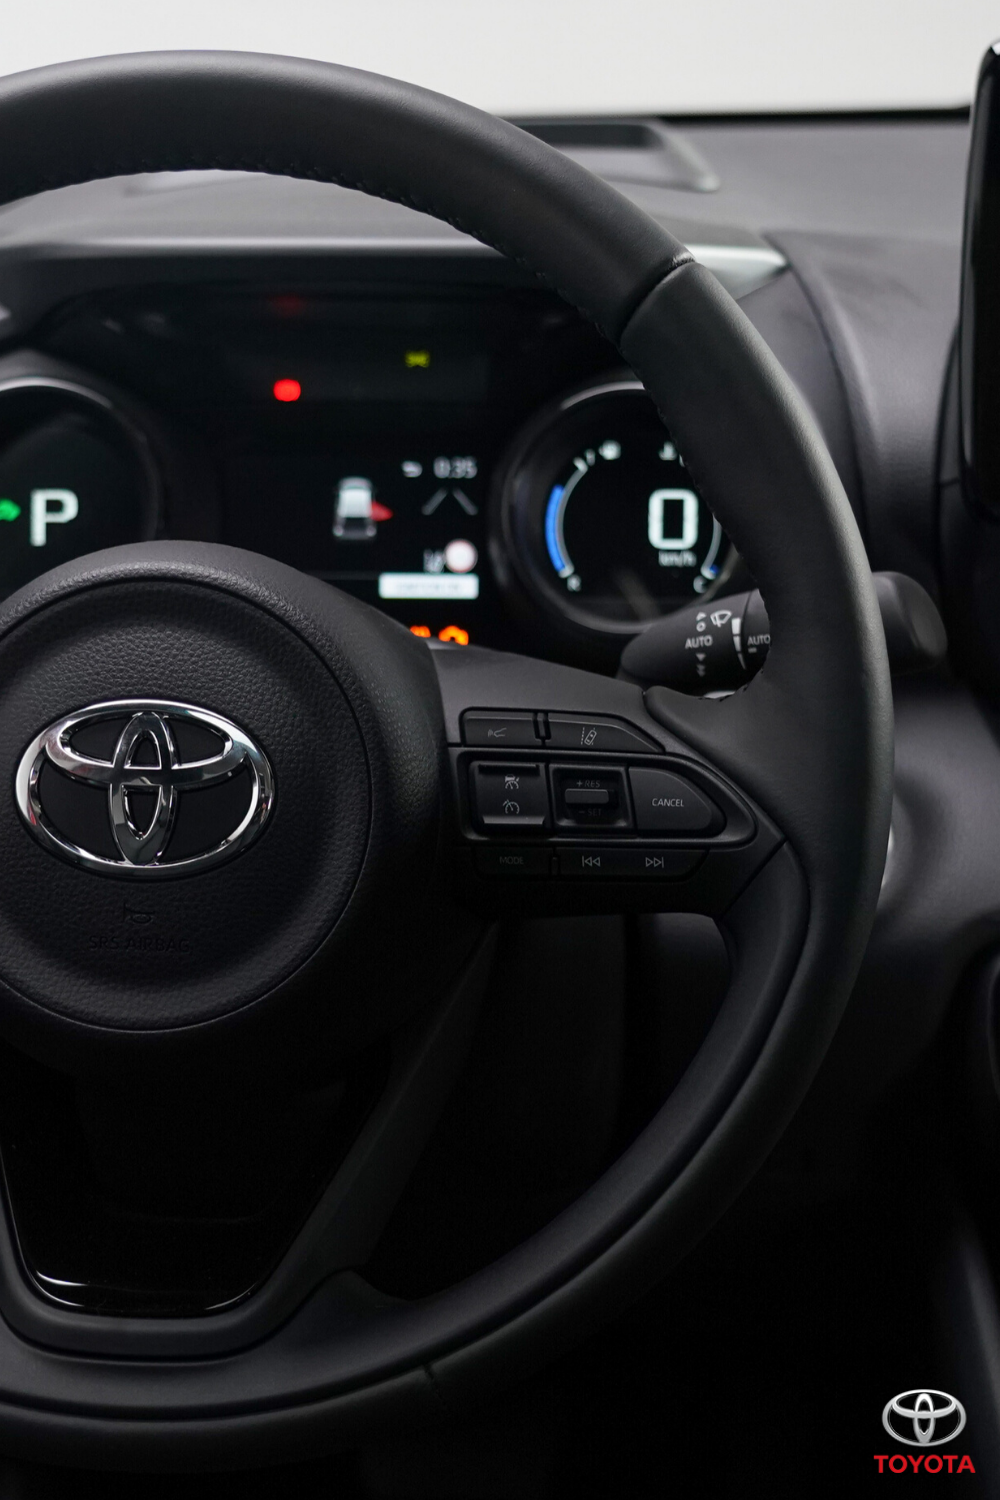 Click to take a closer look behind the wheel of the all-new Toyota Yaris. #Toyota #ToyotaYaris #SmallCar #CompactCar #CityLiving #HybridCar